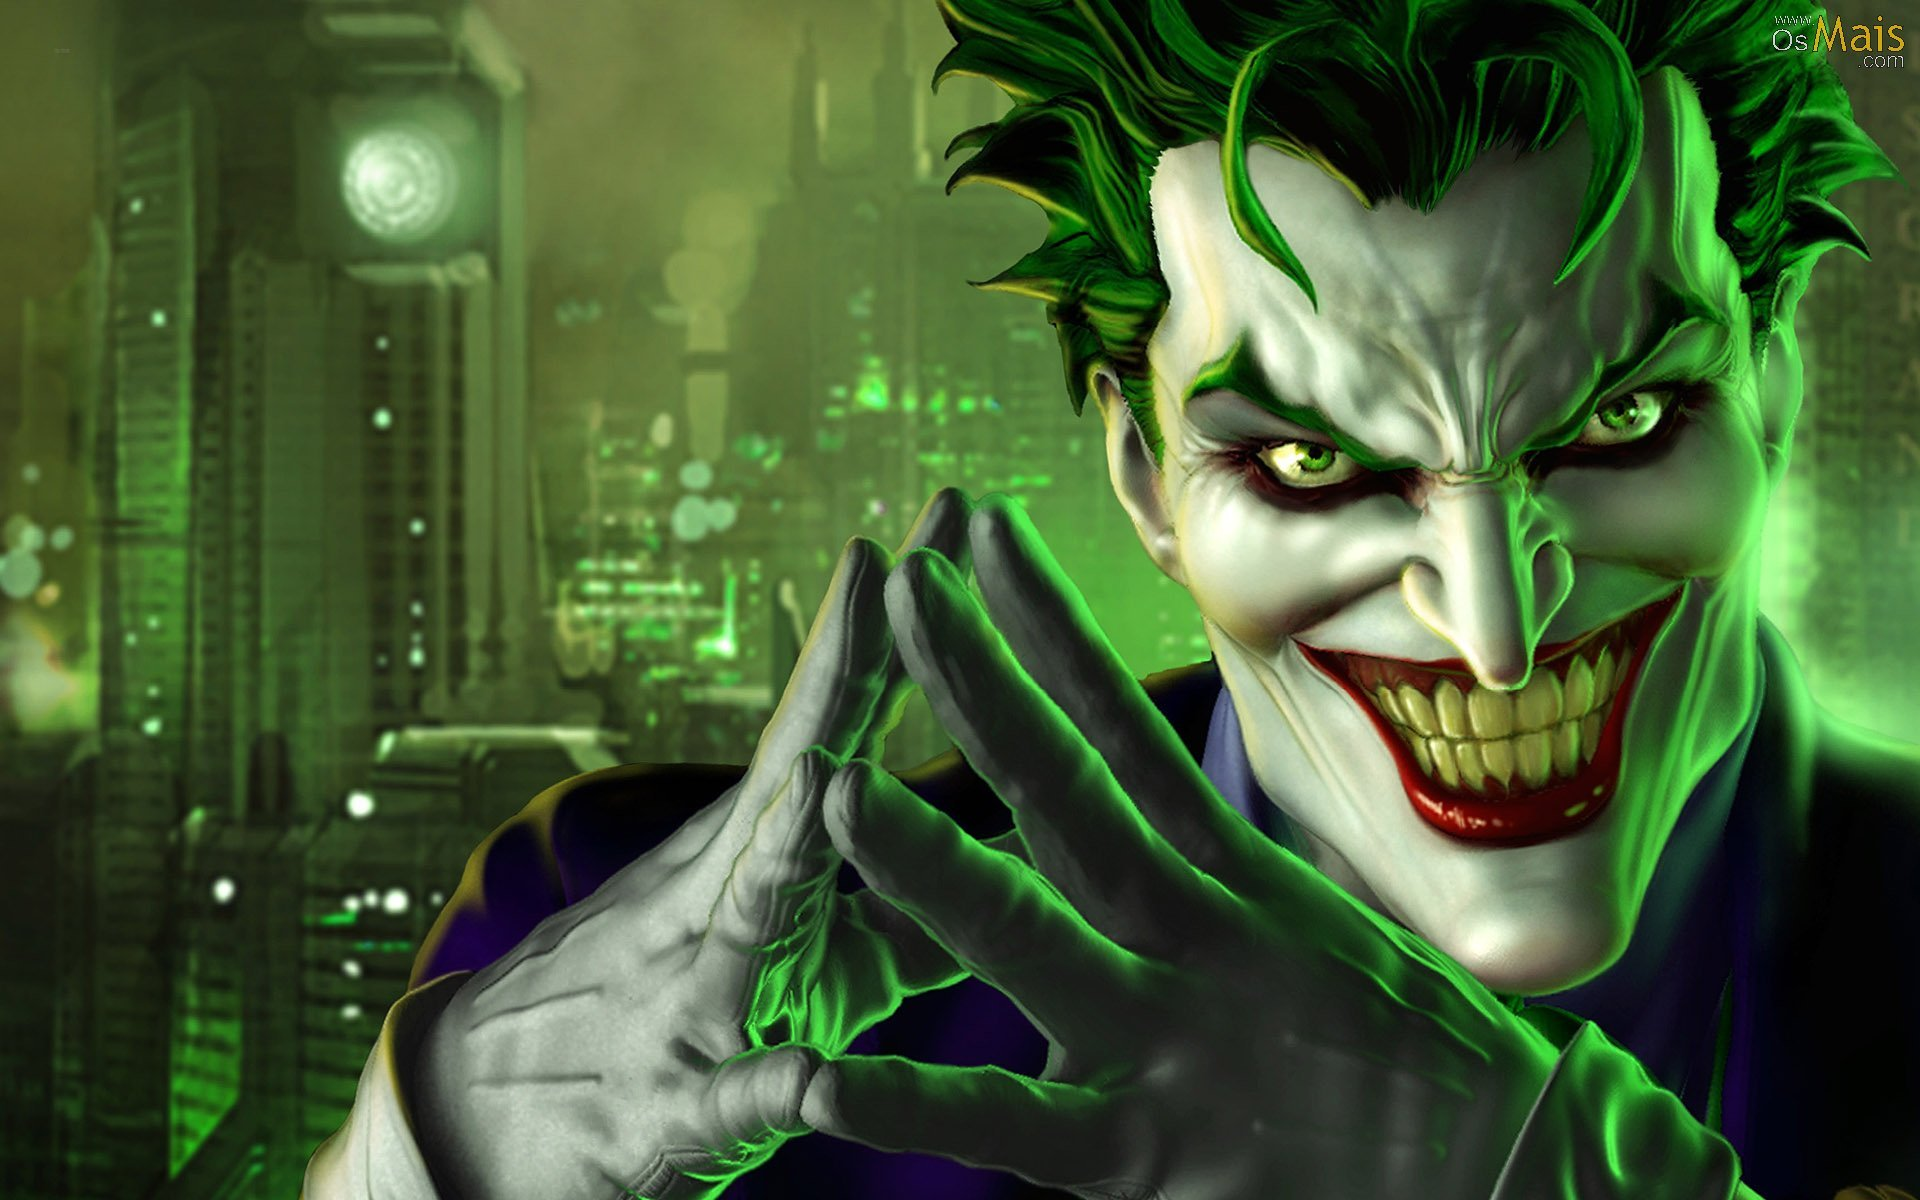 Papel de Parede Joker   papel de paredewallpaperJokerwallpapers 1920x1200